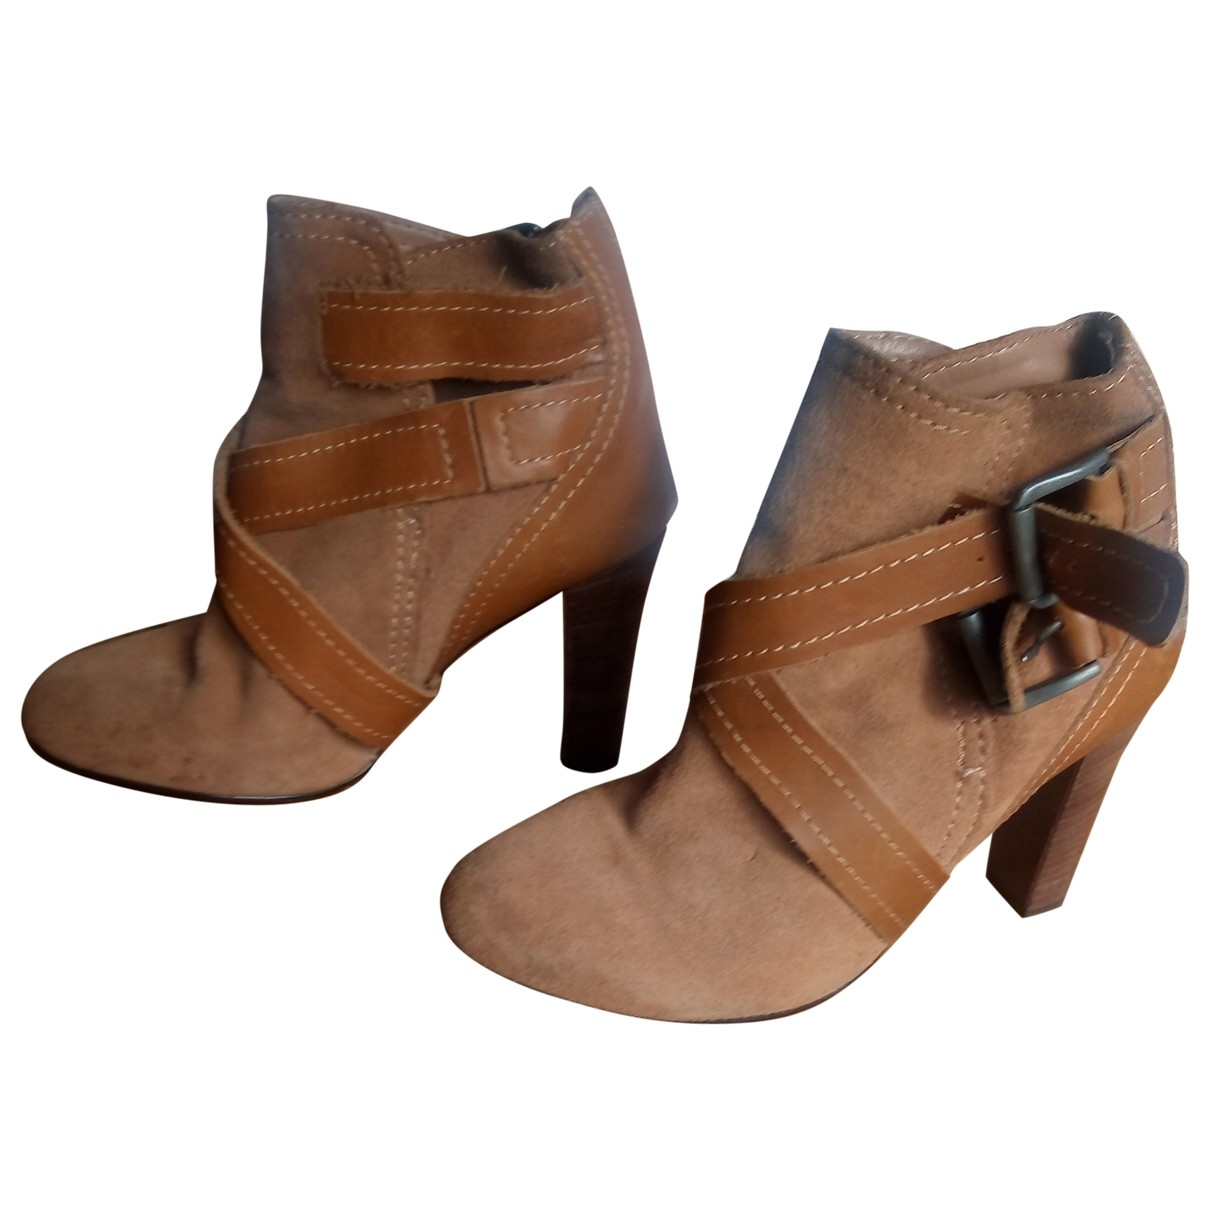 Zara \N Camel Leather Ankle boots for Women 37 EU